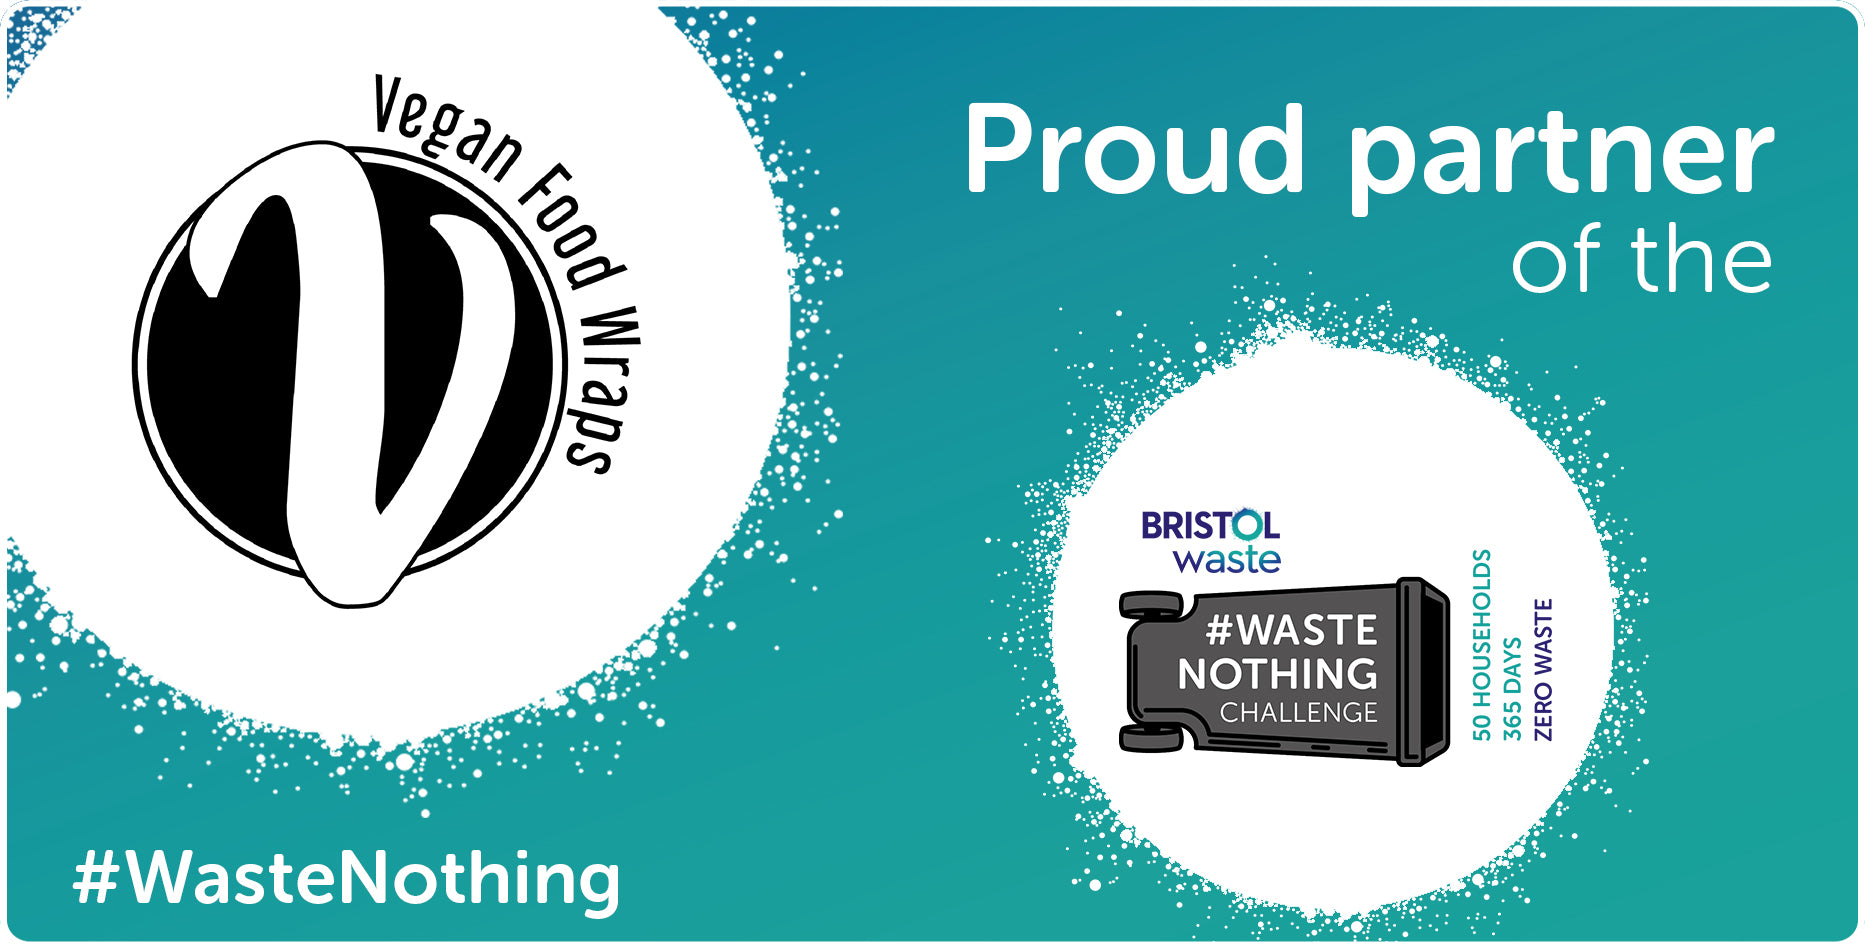 Proud Partner of the Bristol Waste #WasteNothing Challenge